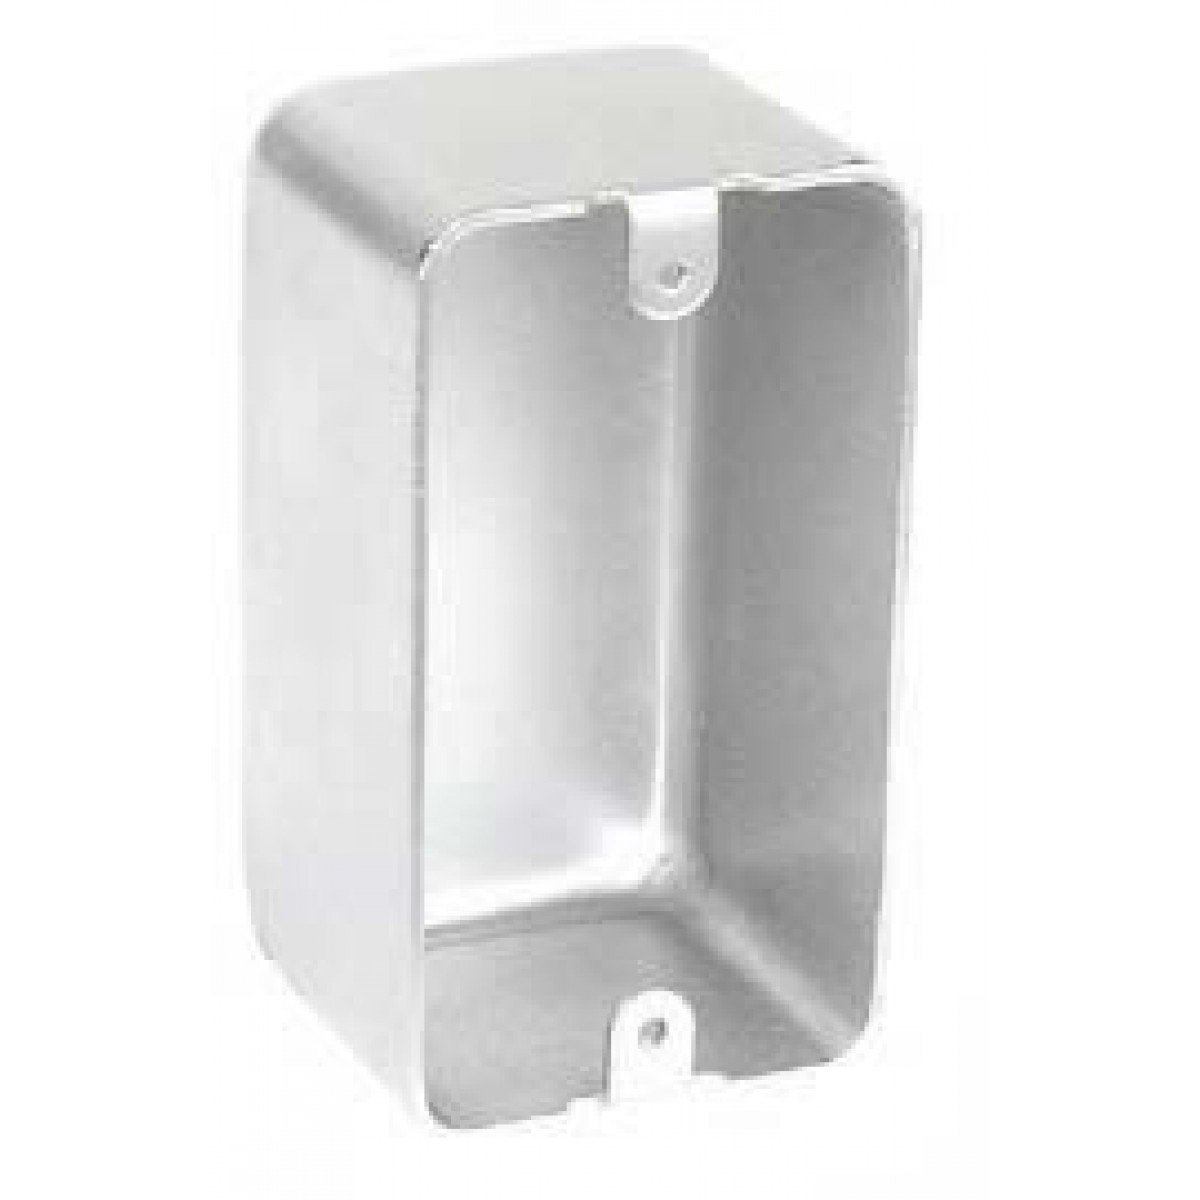 2 Pcs, Blank Handy Utility Box, 2-1/8 In. Deep, 304 Stainless Steel for Convenience Outlets, Switches & Small Junction Boxes In Exposed Work Applications